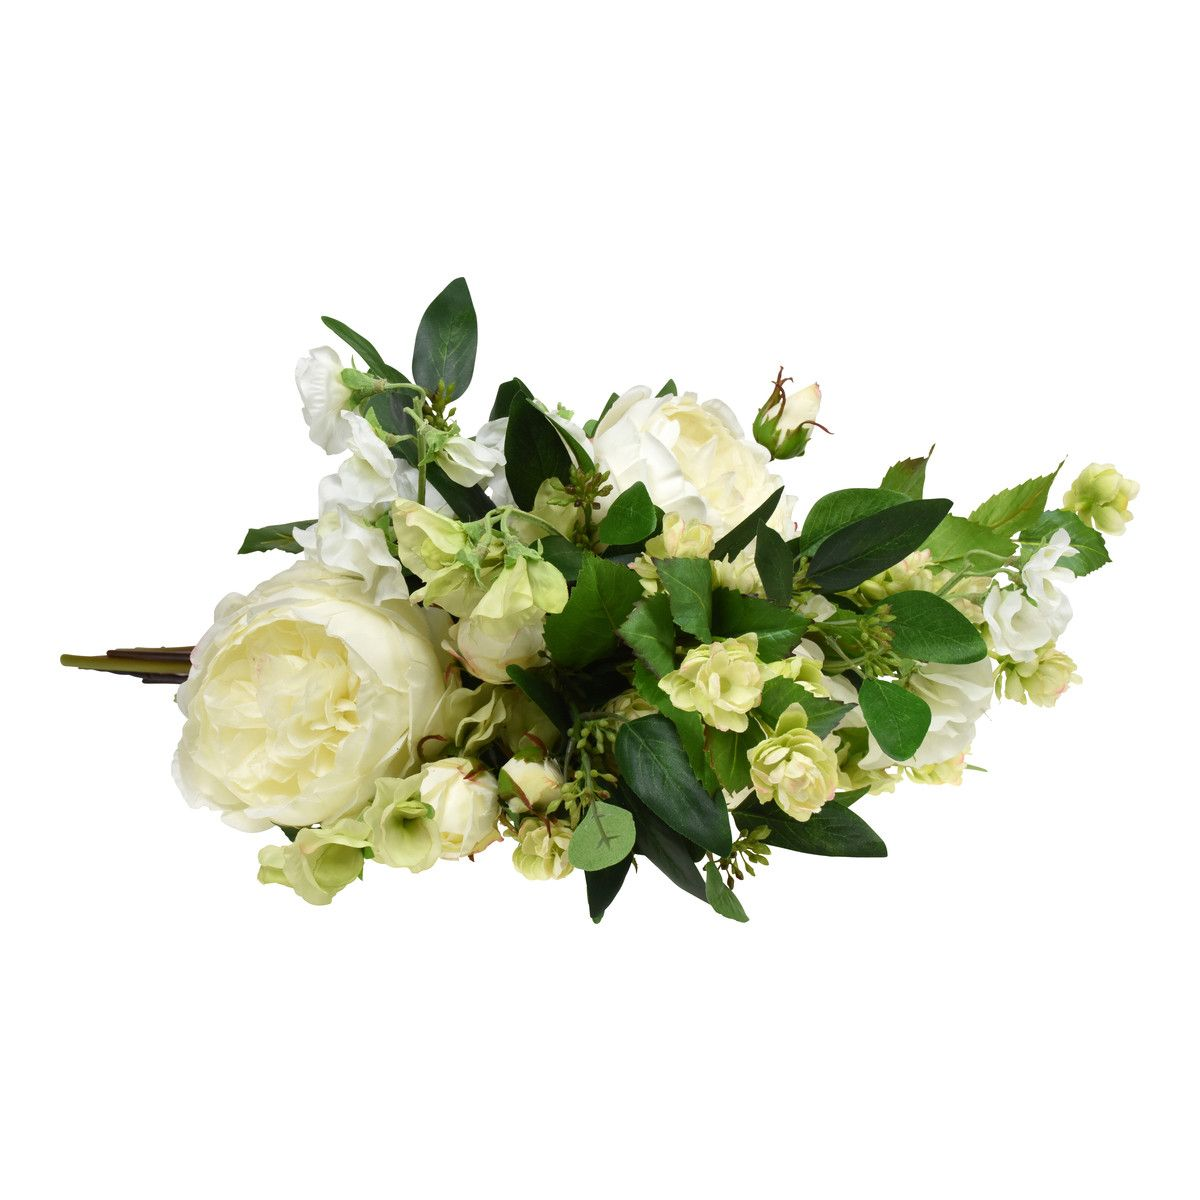 Hops Sweet Peas And Roses A Whimsical Bouquet Filled With White